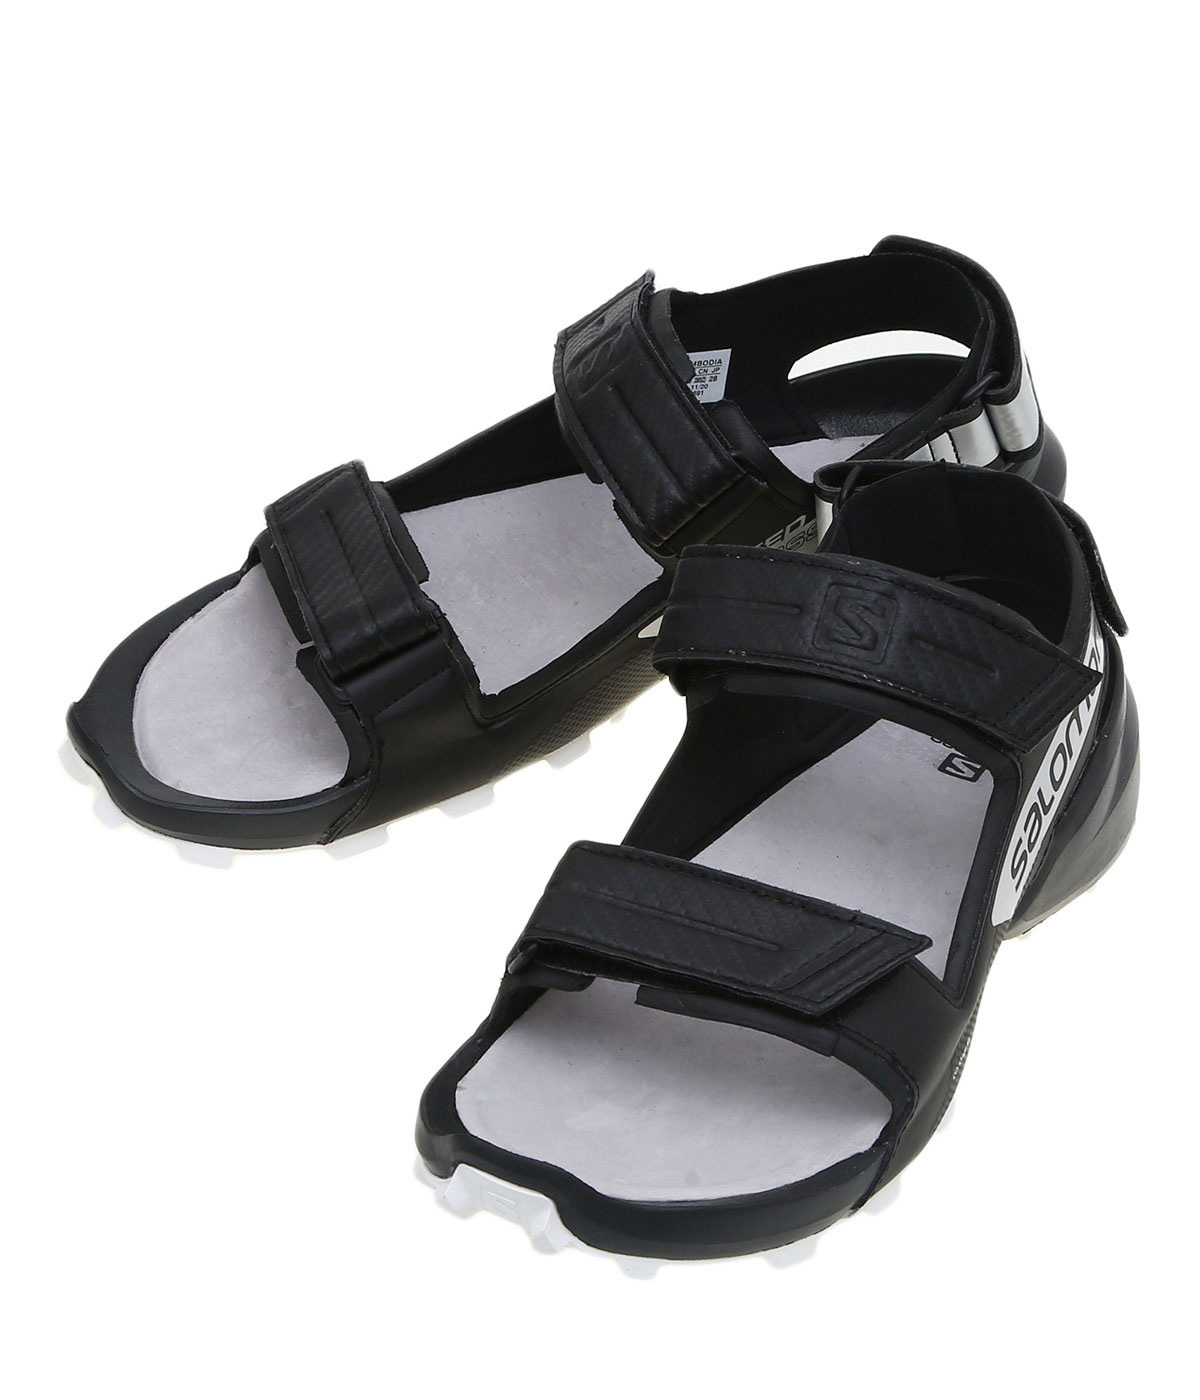 salomon CROSS SANDAL for and wander